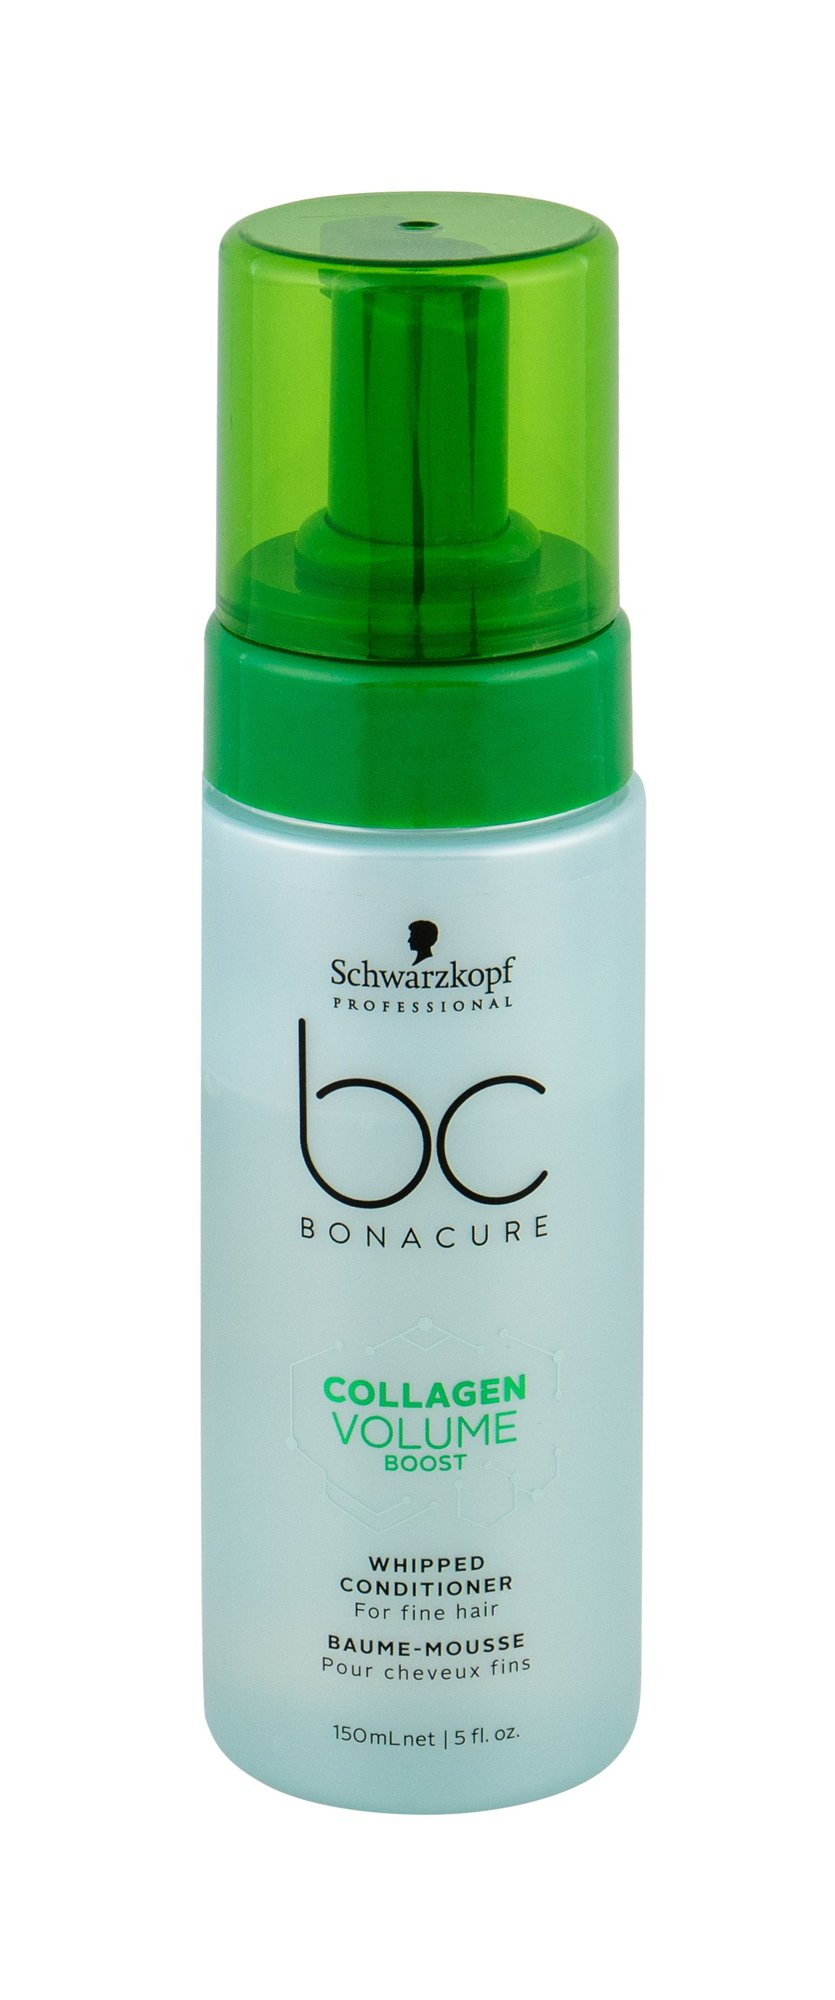 Schwarzkopf Professional BC Bonacure Conditioner 150ml